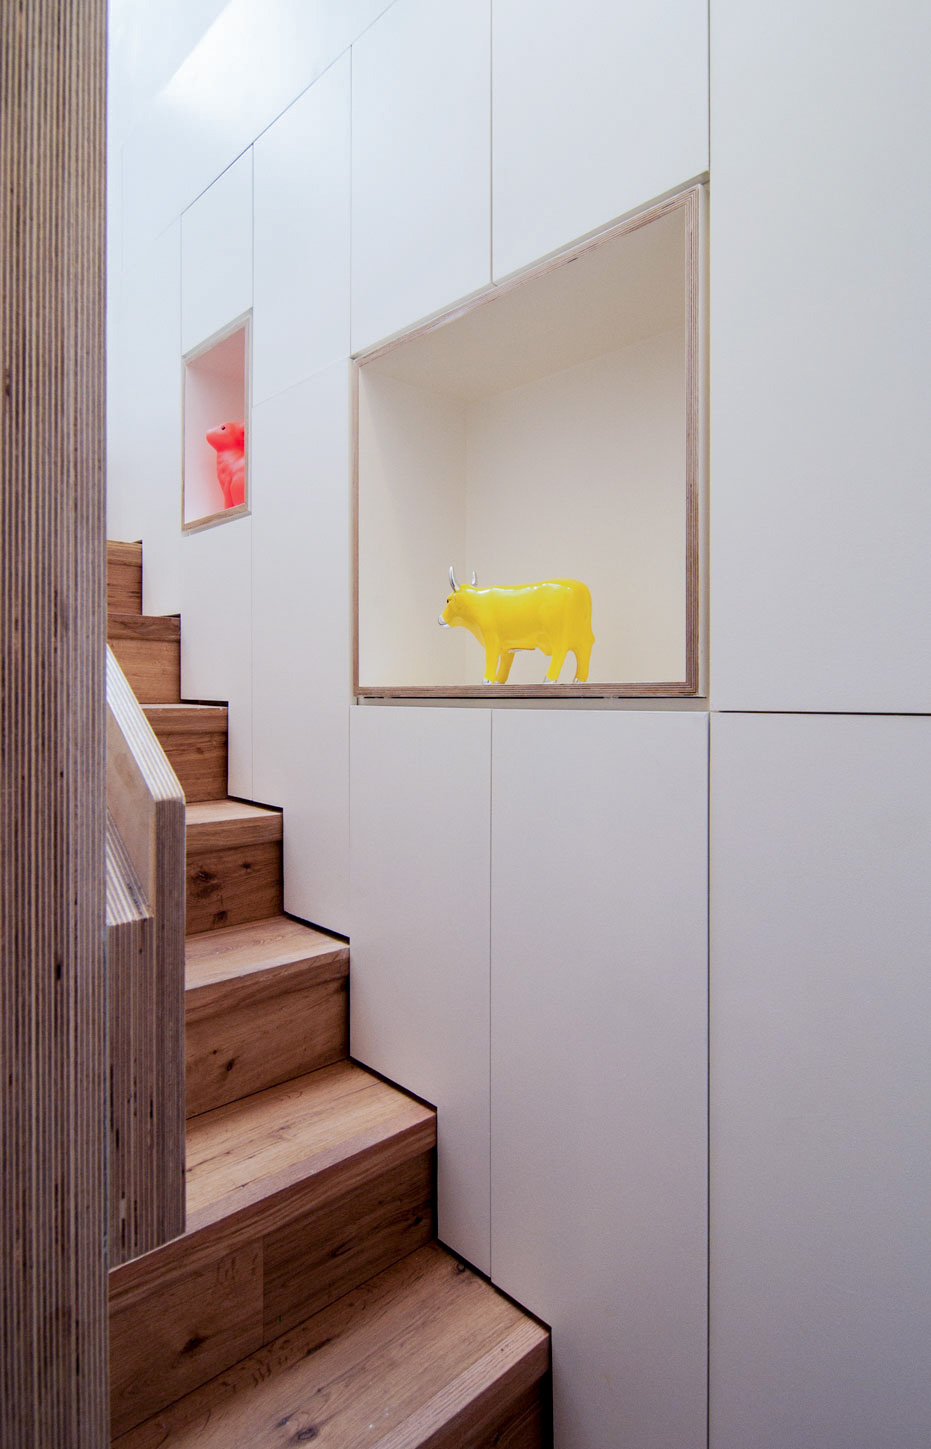 Bespoke staircase and contemporary storage and shelving providing plenty of storage space.